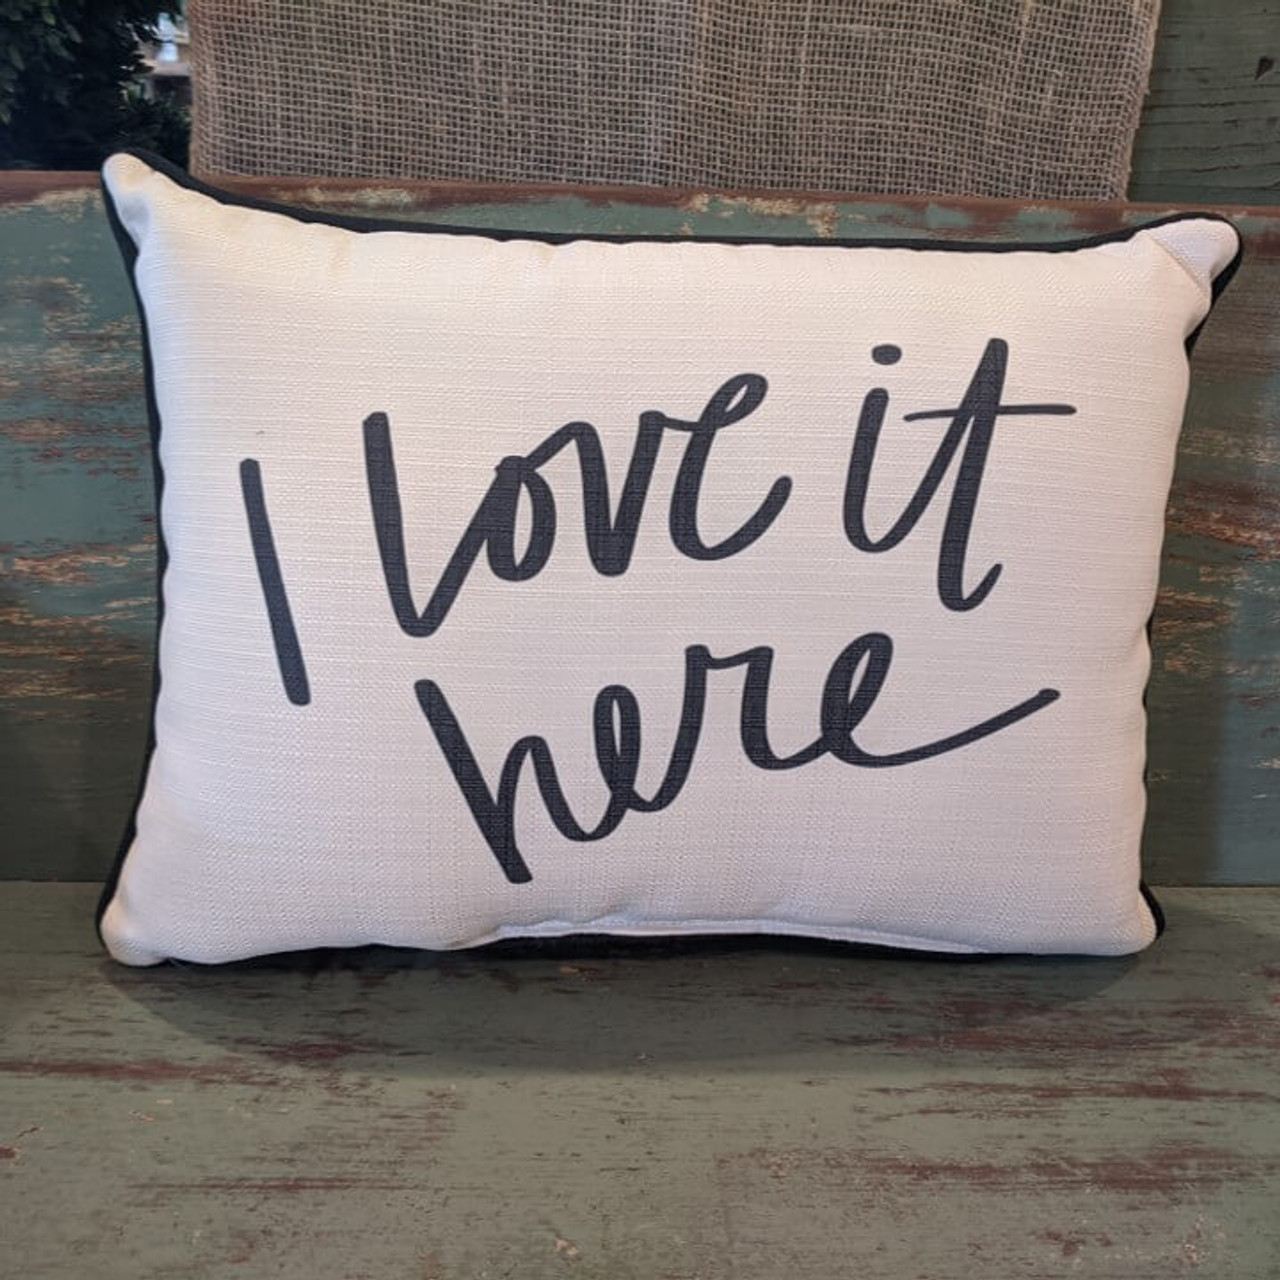 """The perfect way to cozy up any space! """"I Love it here"""" sentiment is dyed directly into the fabric, so it won't peel or crack; black piping around the edge for an extra pop! Made from a soft yet durable polyester fabric, your pillow will arrive stuffed with poly-fill and sewn shut. Approx. 20"""" W x 14"""" H; machine washable in cold water, delicate cycle- fluff, air dry flat."""